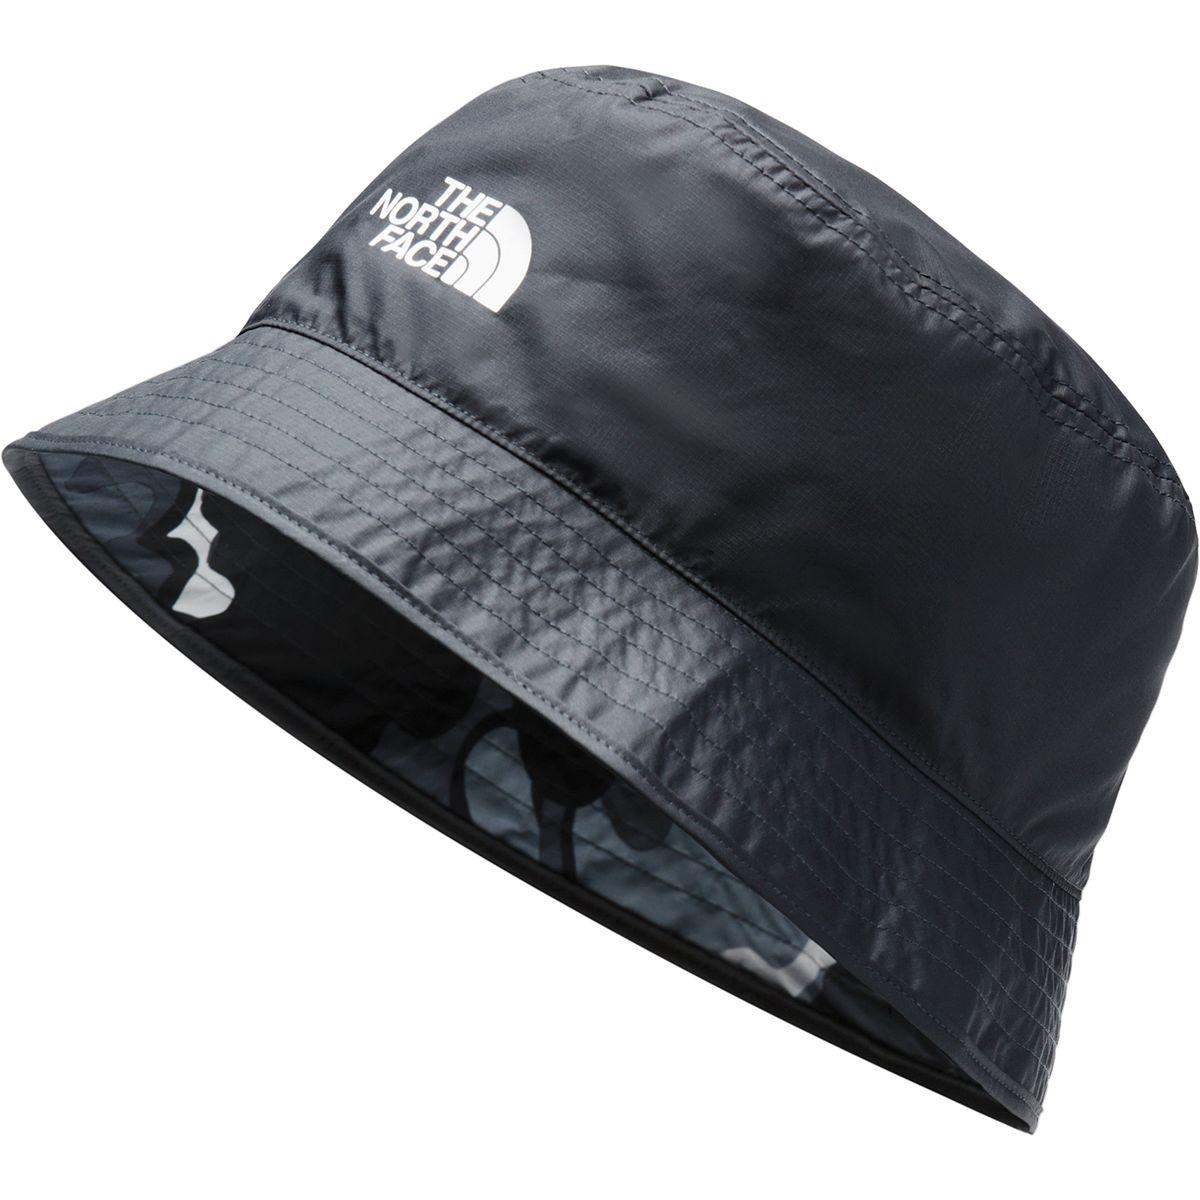 4b023ad3a4df9b The North Face Sun Stash Hat in Gray for Men - Lyst